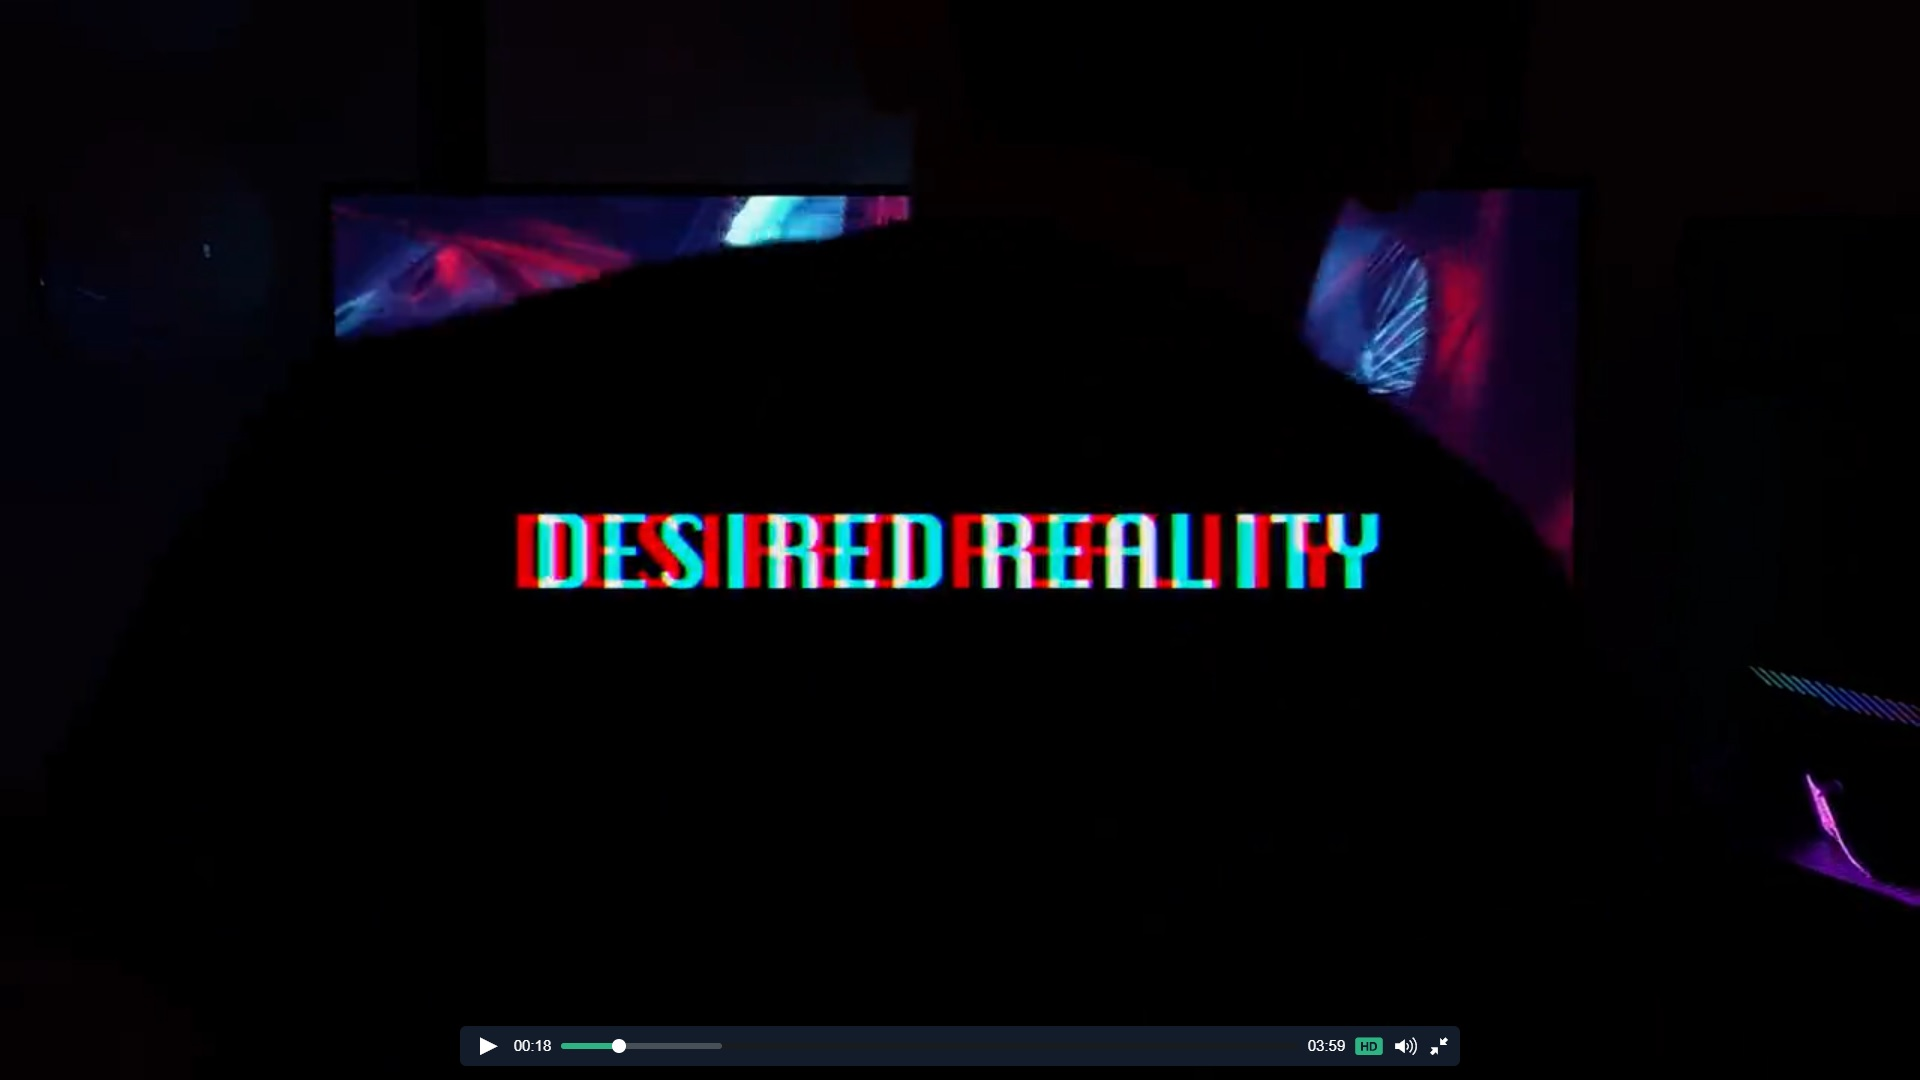 Desired Reality